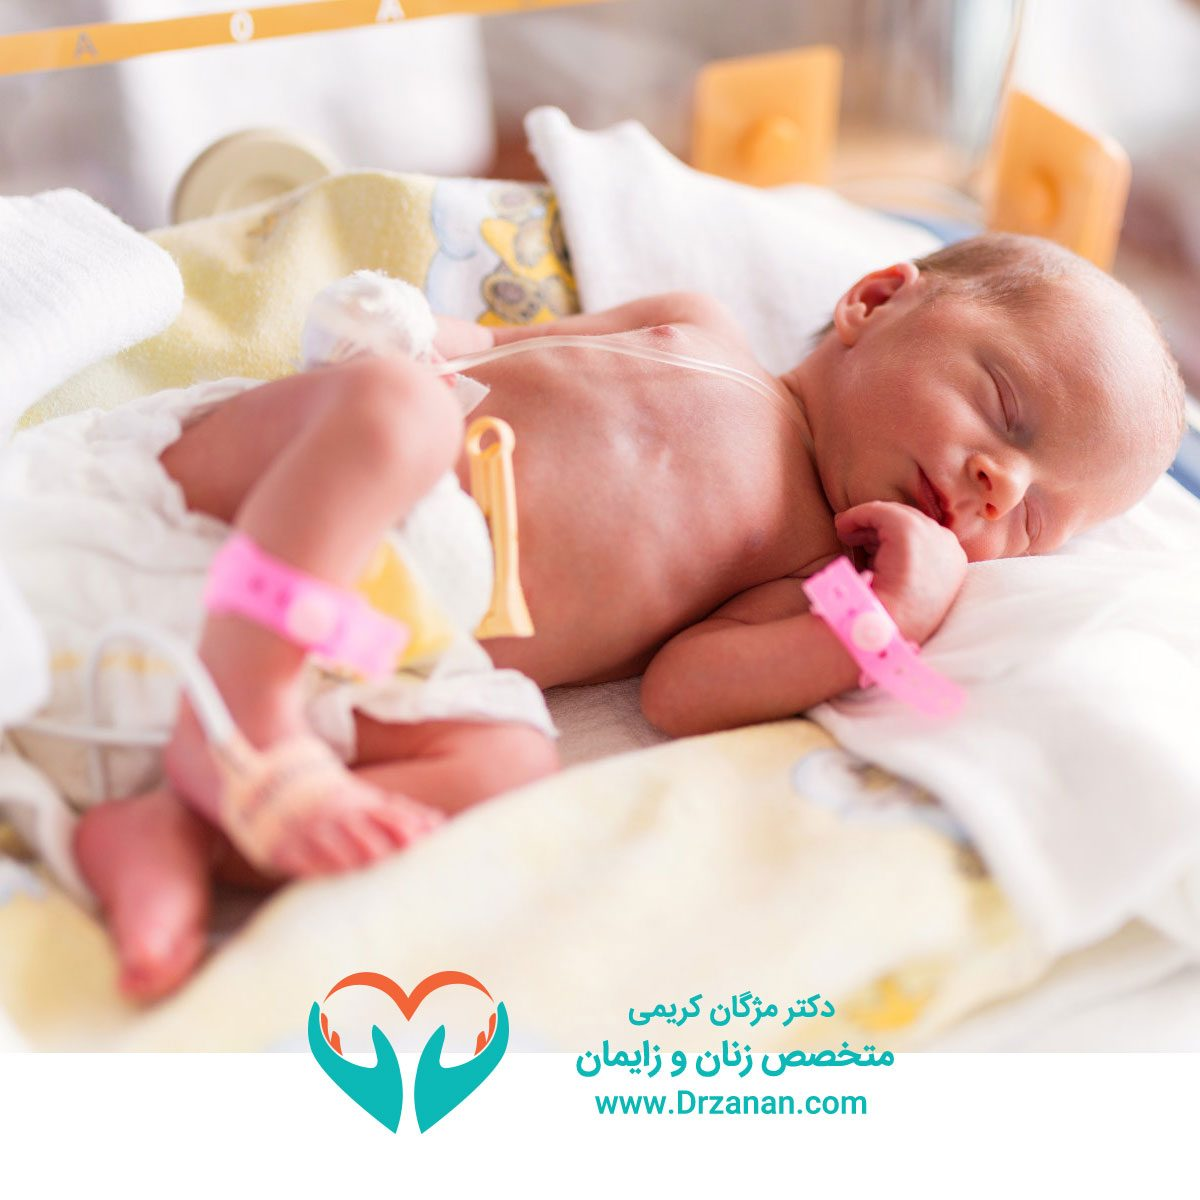 how-is-preterm-labor-treated-1200x1200.jpg